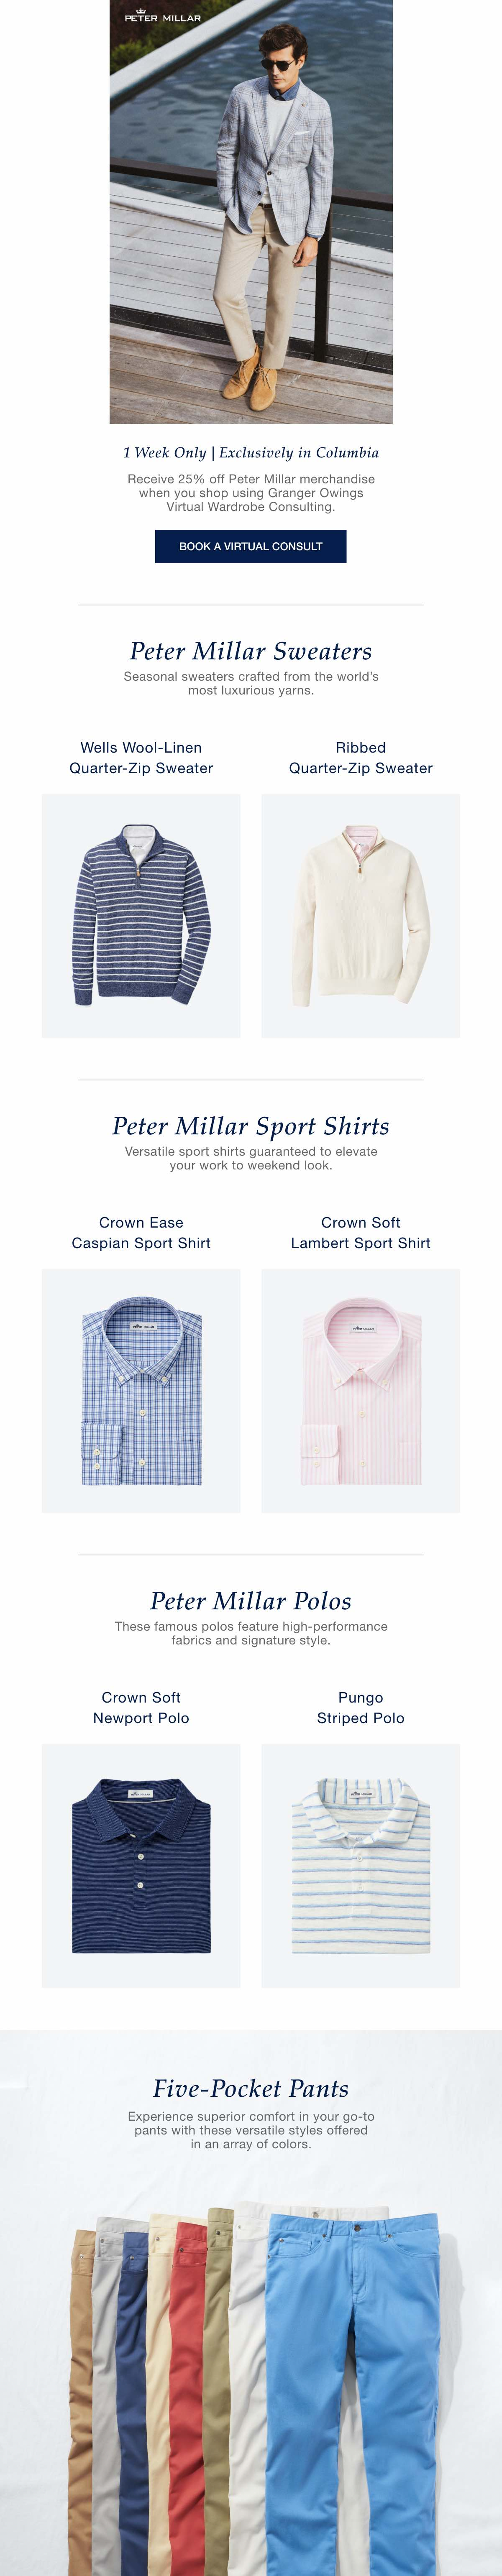 Peter Millar 25% Off Sale